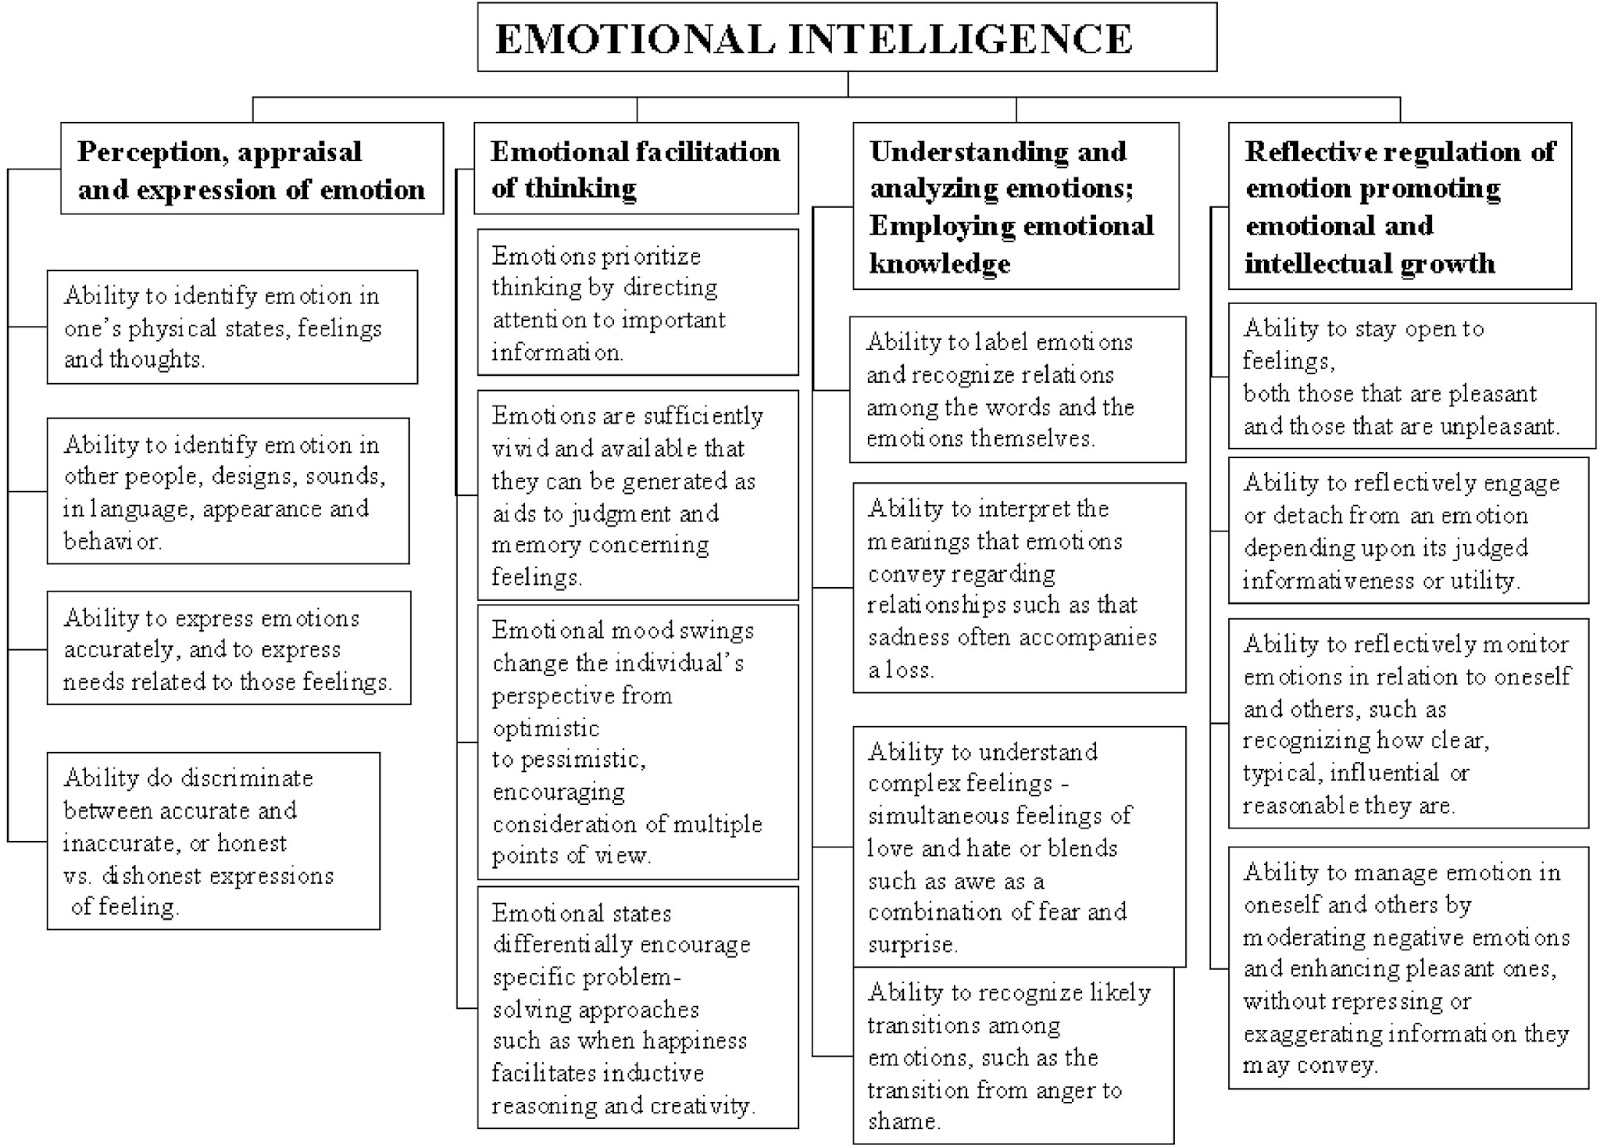 emotions research paper Emotions: how do we control them and do we even want to1 emotions: how do we control them and do we even want to cassidy lowden 26 ma.